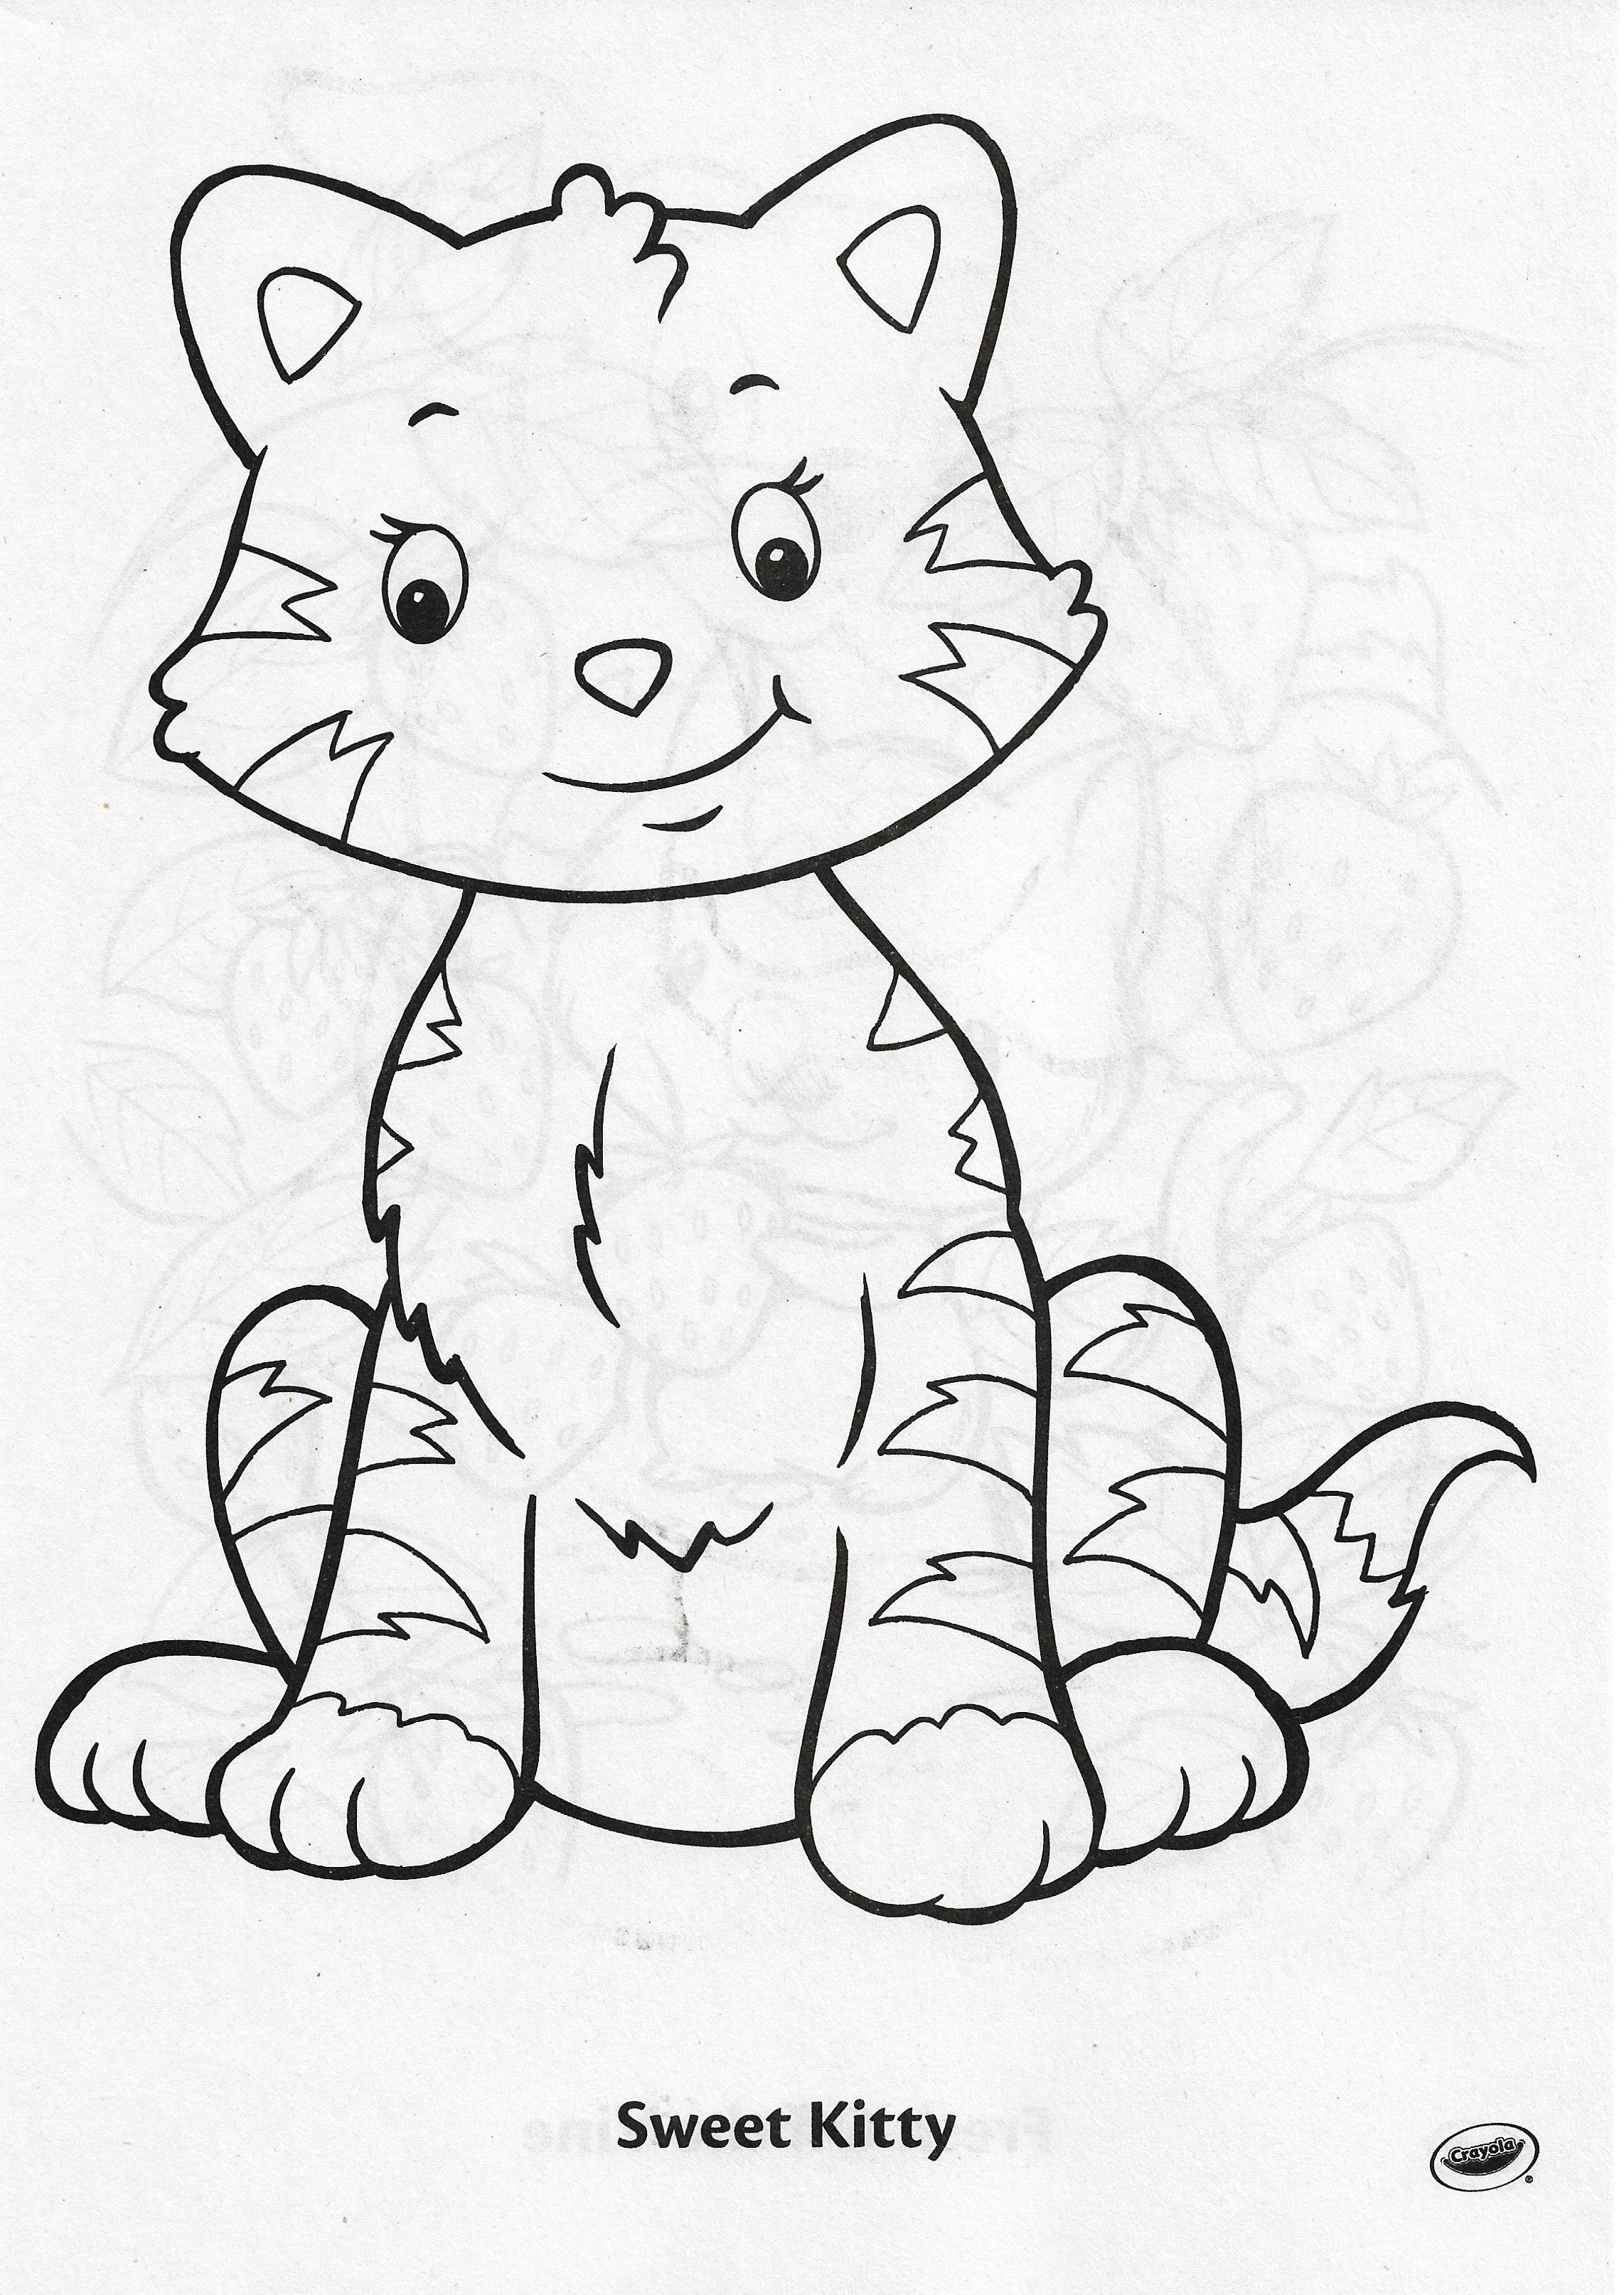 Crayola Coloring Pages in 2020 Coloring pages, Crayola